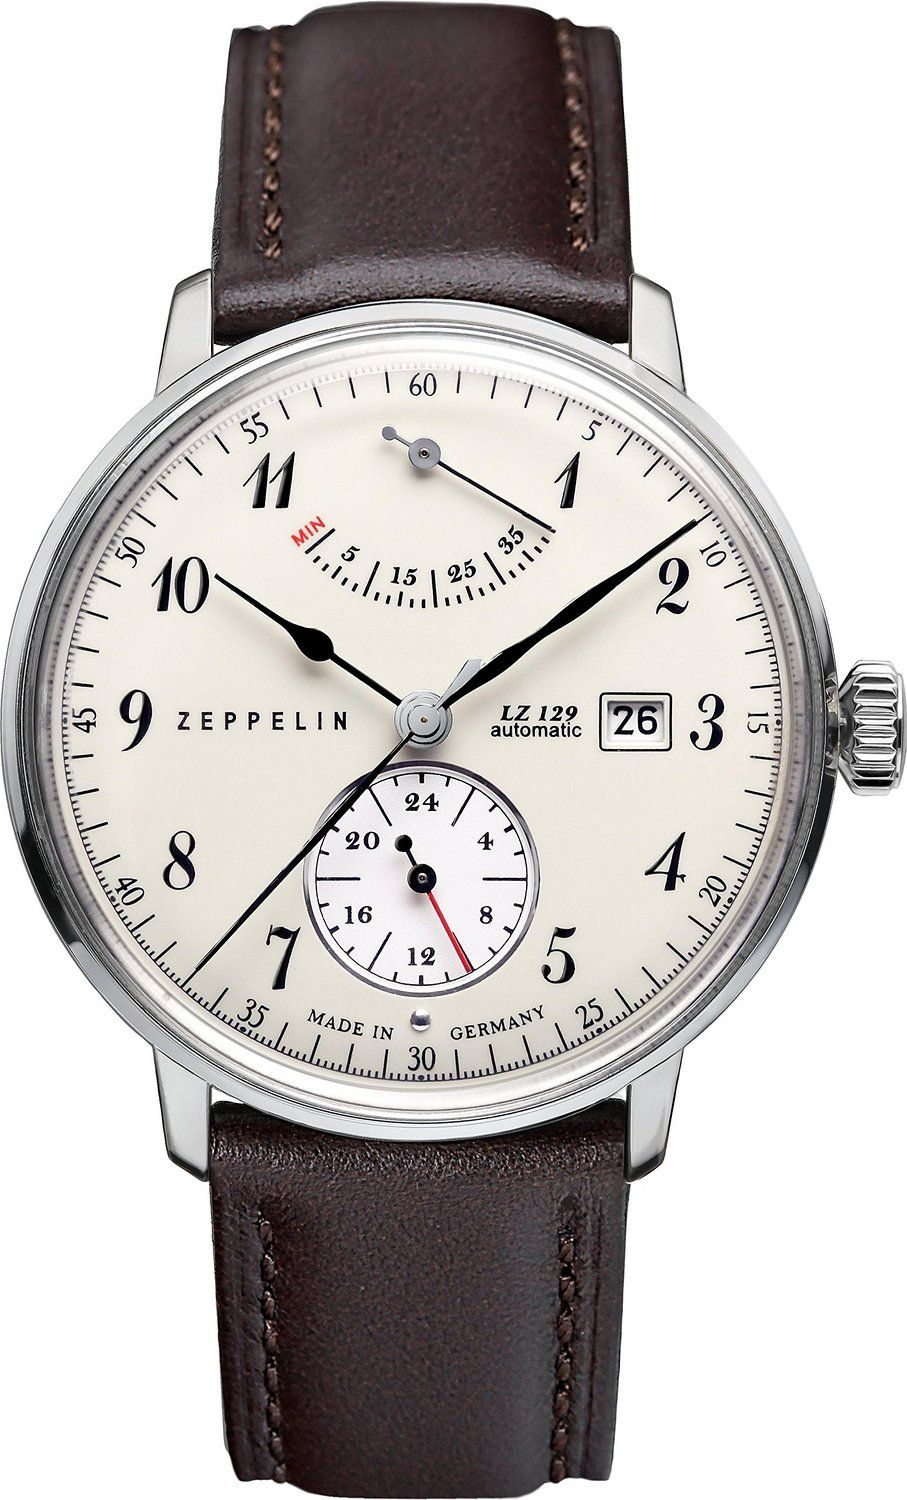 Analog Uhr Zeppelin Watches Herren Armbanduhr Xl Analog Automatik Leder 70604